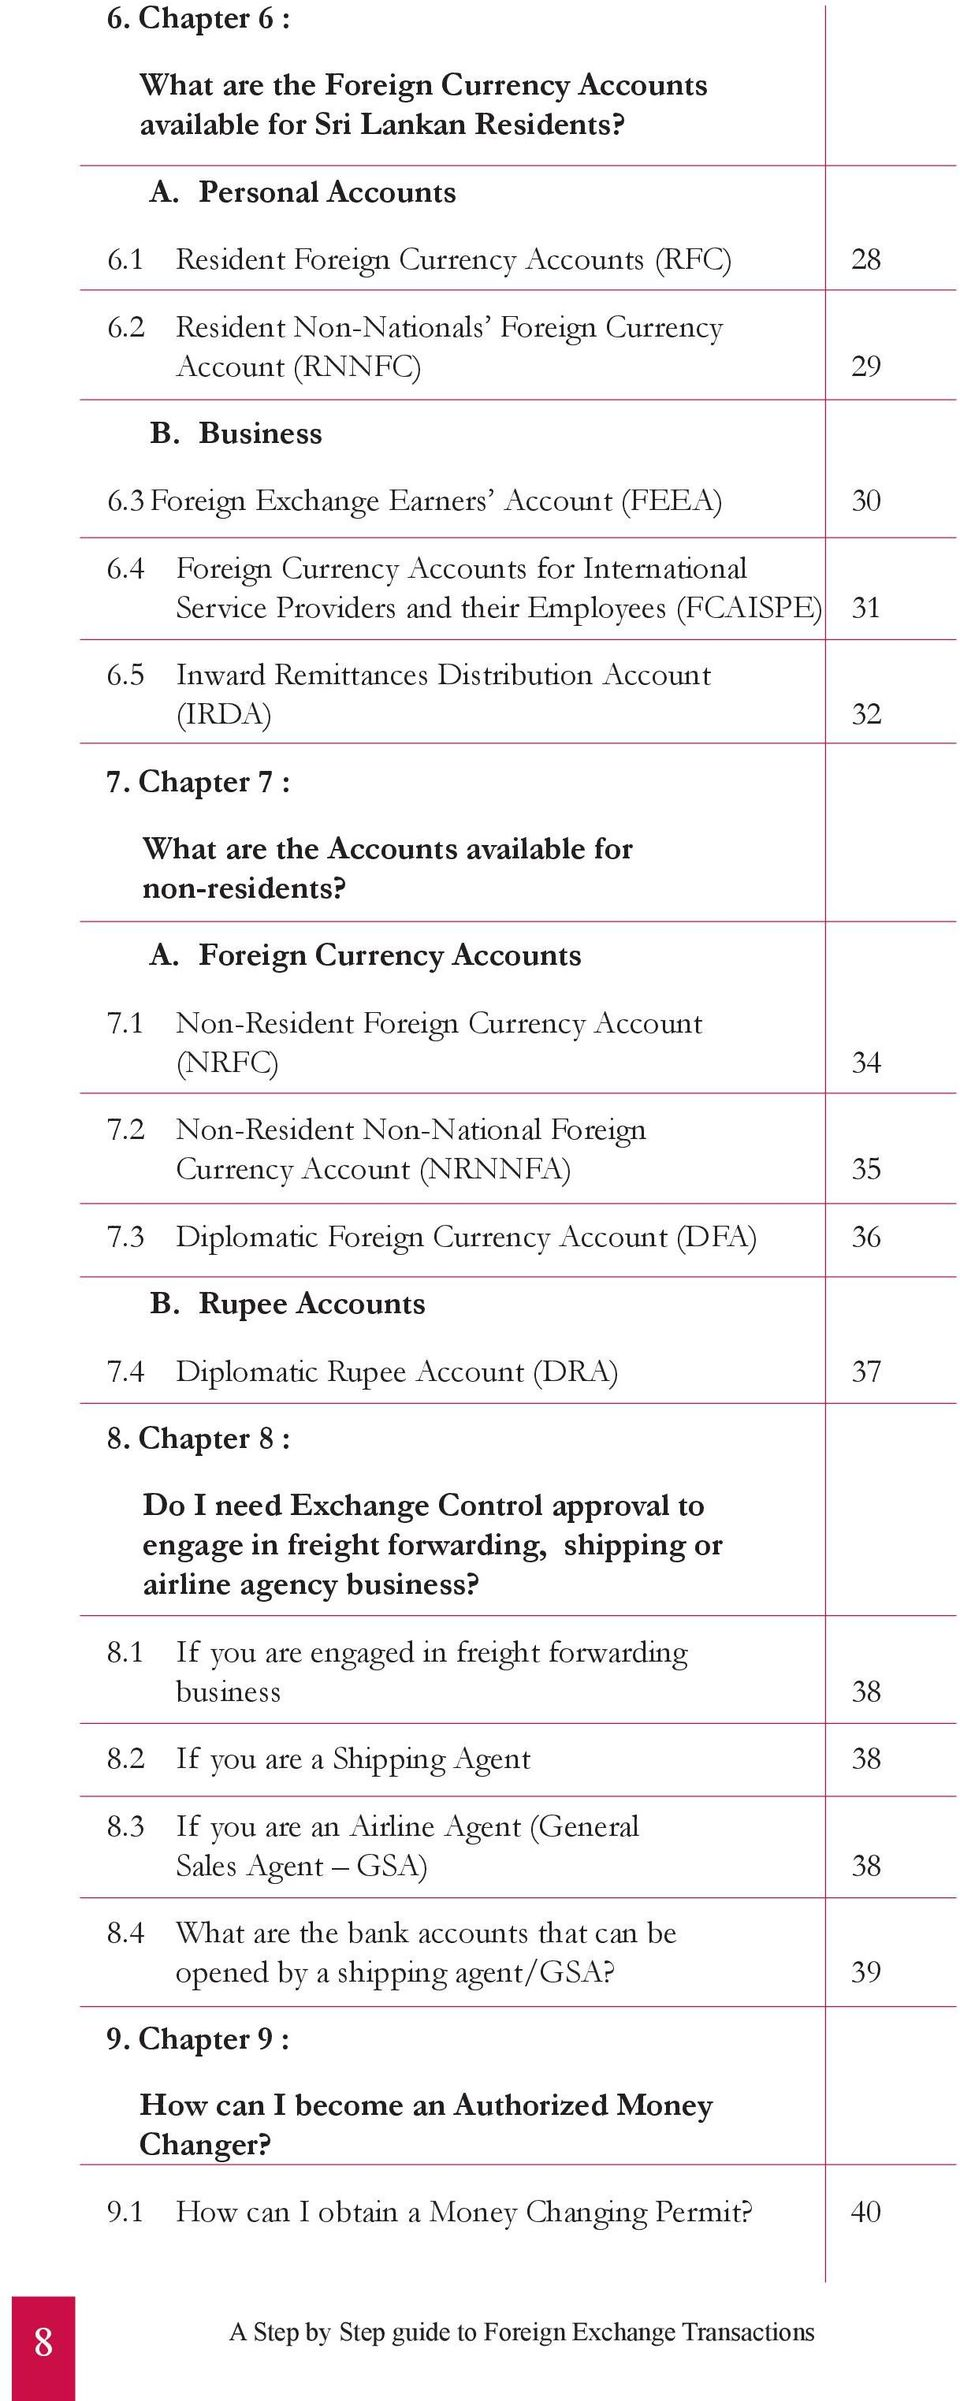 4 Foreign Currency Accounts for International Service Providers and their Employees (FCAISPE) 31 6.5 Inward Remittances Distribution Account (IRDA) 32 7.